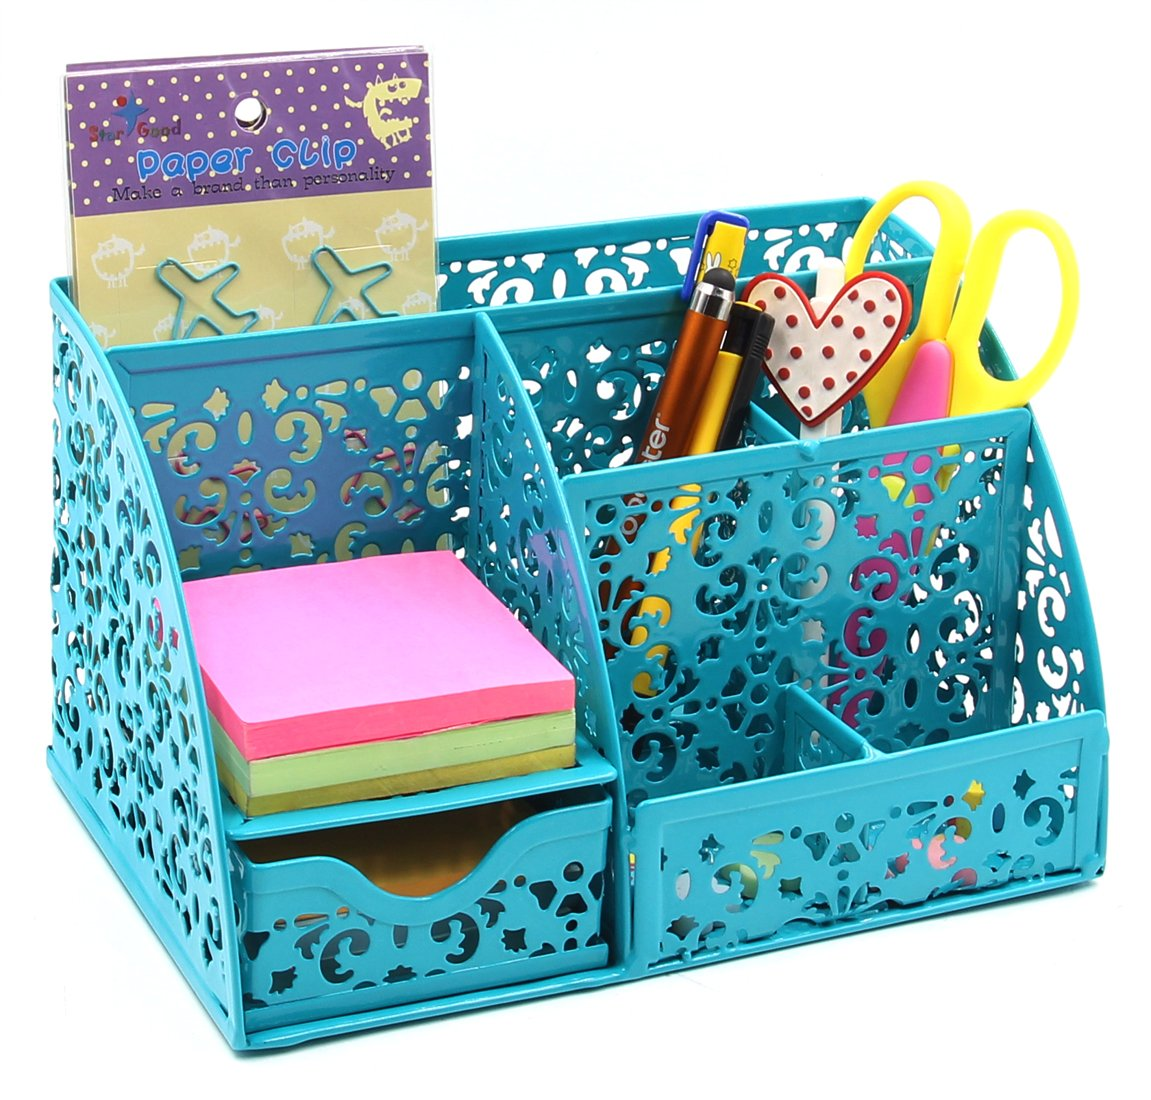 EasyPAG Cute Office Desk Organizer Mixed Pattern 6 Compartments Desktop Accessories Caddy with Drawer,Dark Teal Baike